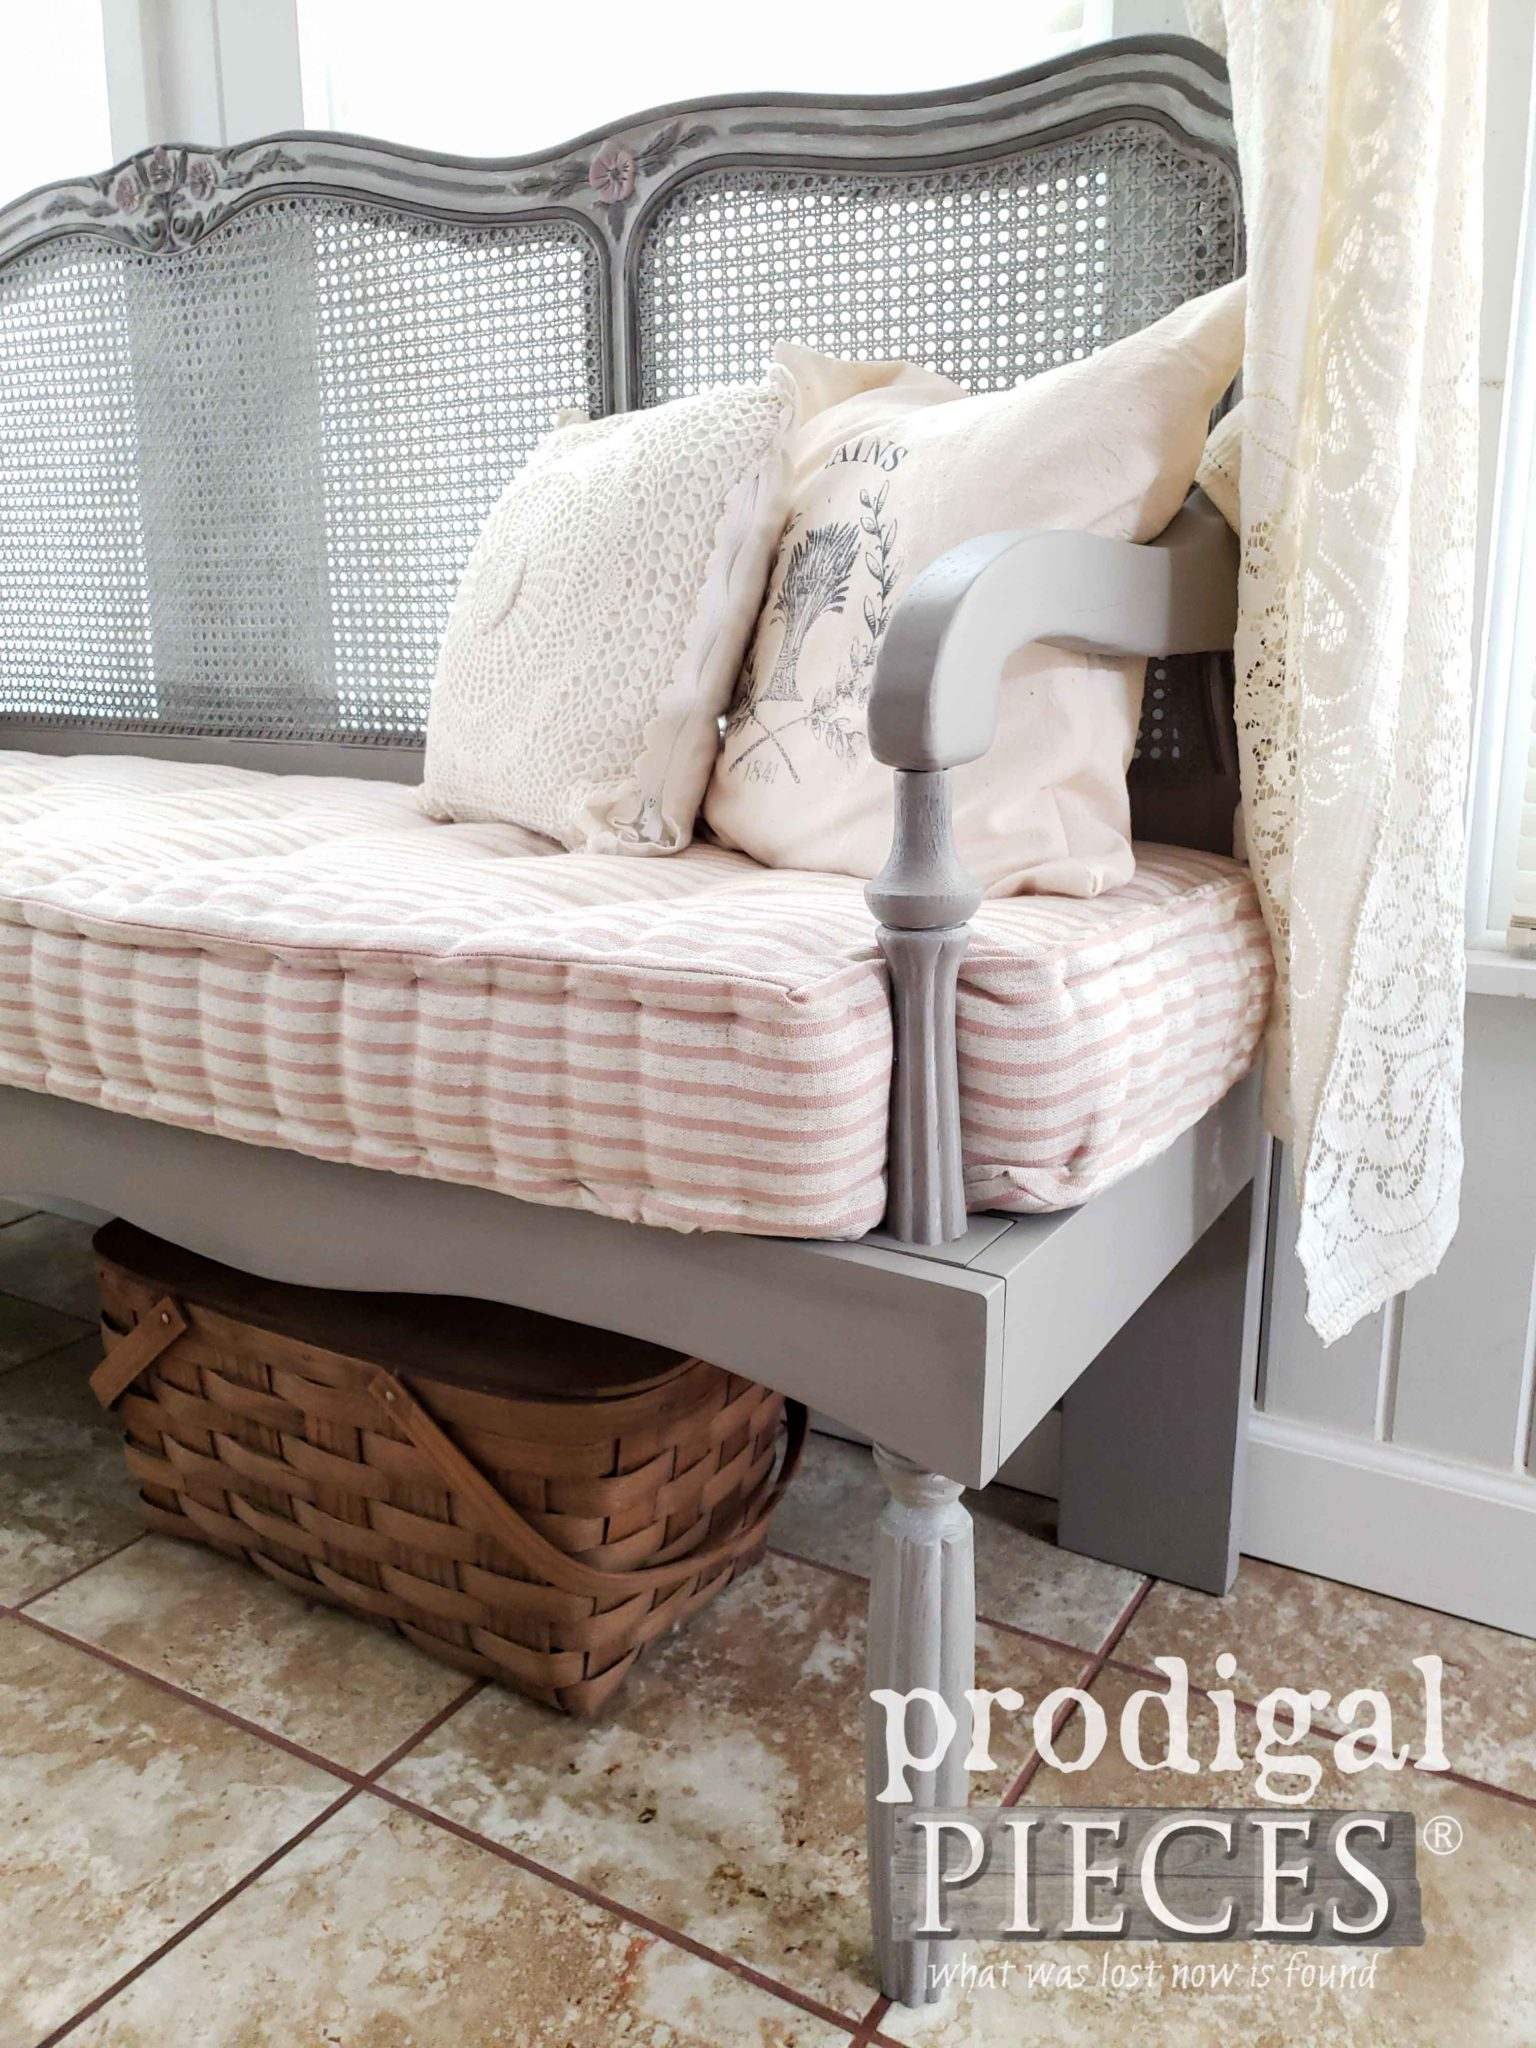 Handmade French Mattress on Custom Built French Provincial Headboard Bench by Larissa of Prodigal Pieces | prodigalpieces.com